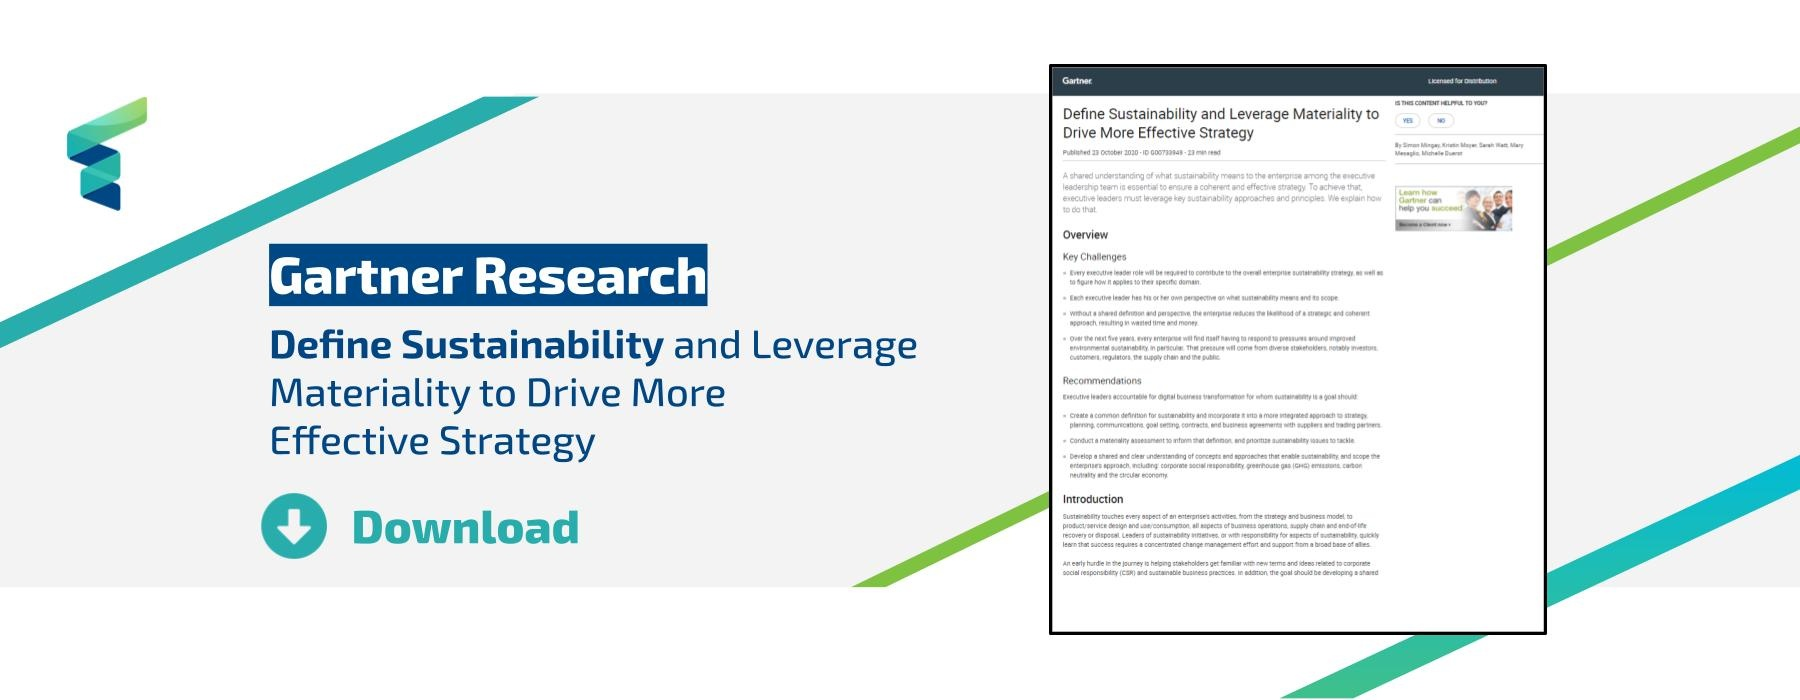 Download the Gartner Research on Sustainability